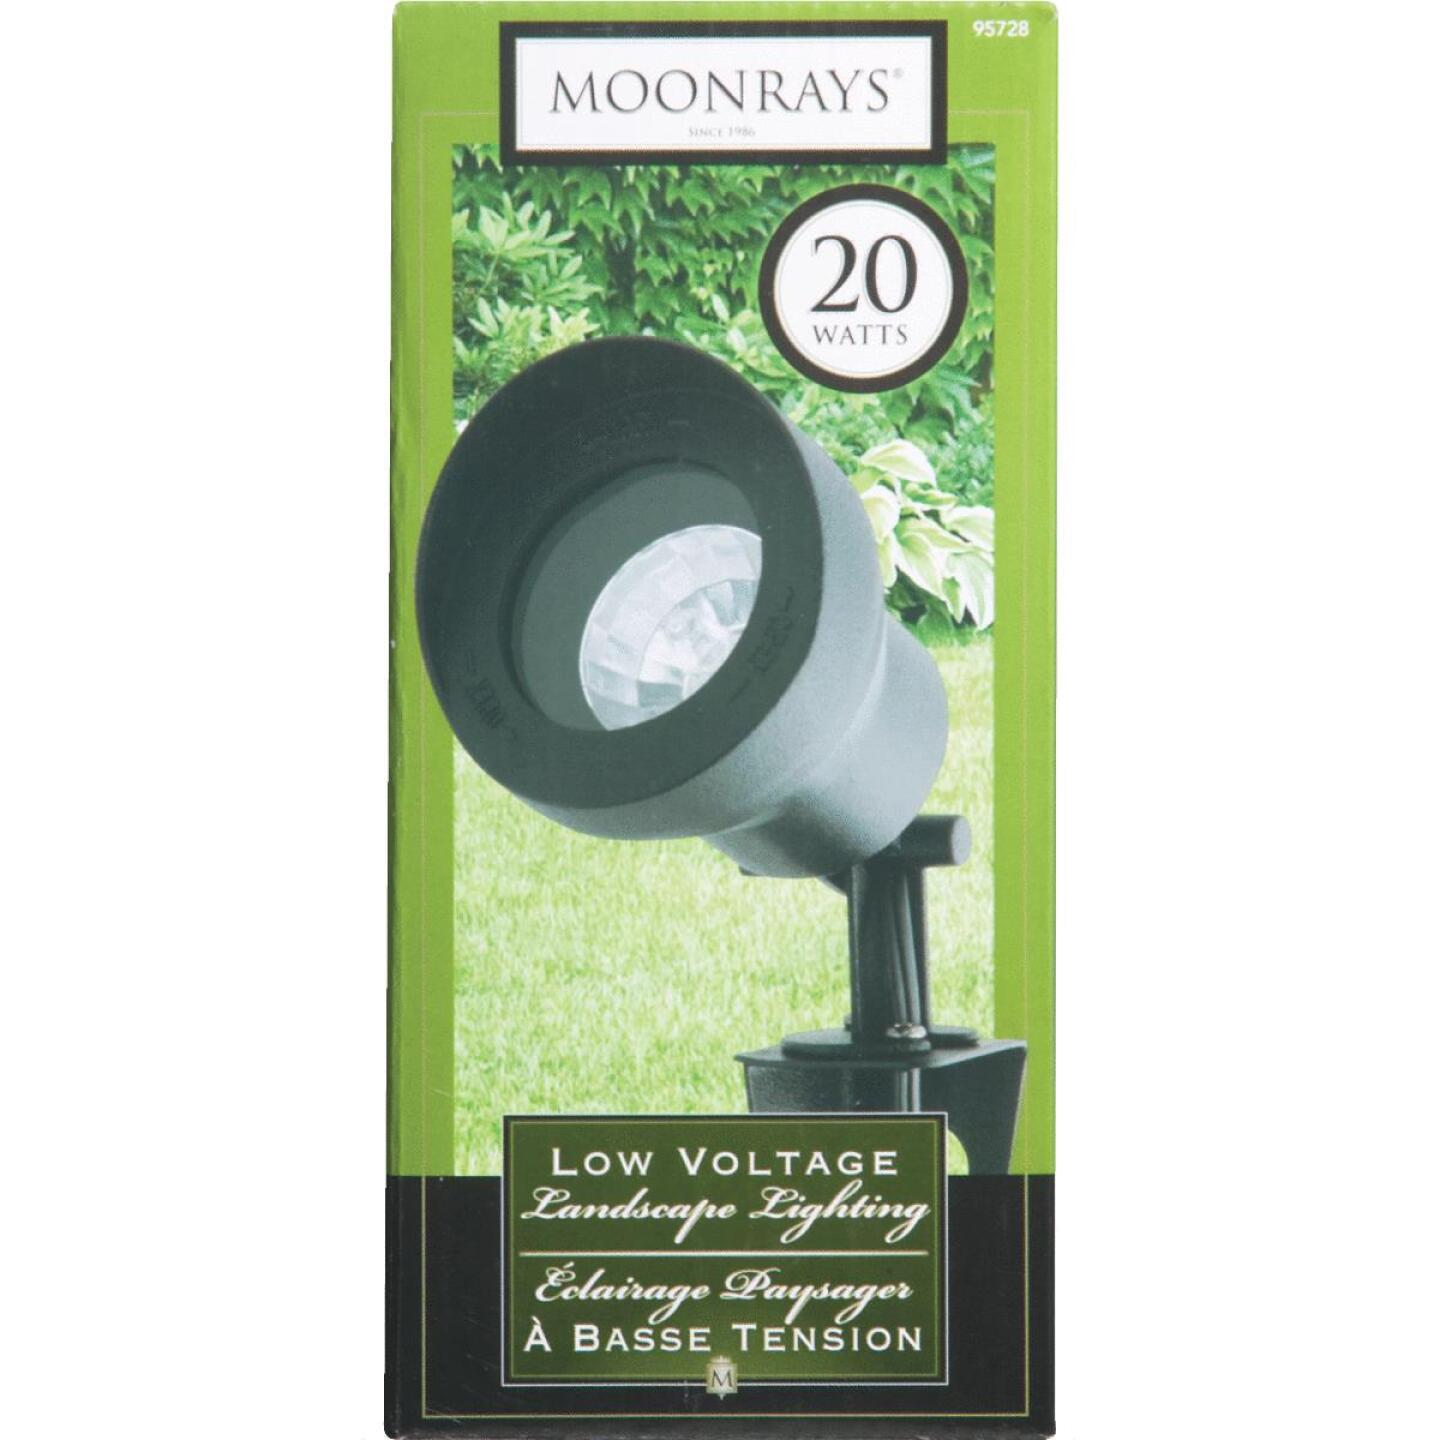 Moonrays Halogen Black Landscape Stake Light Image 2